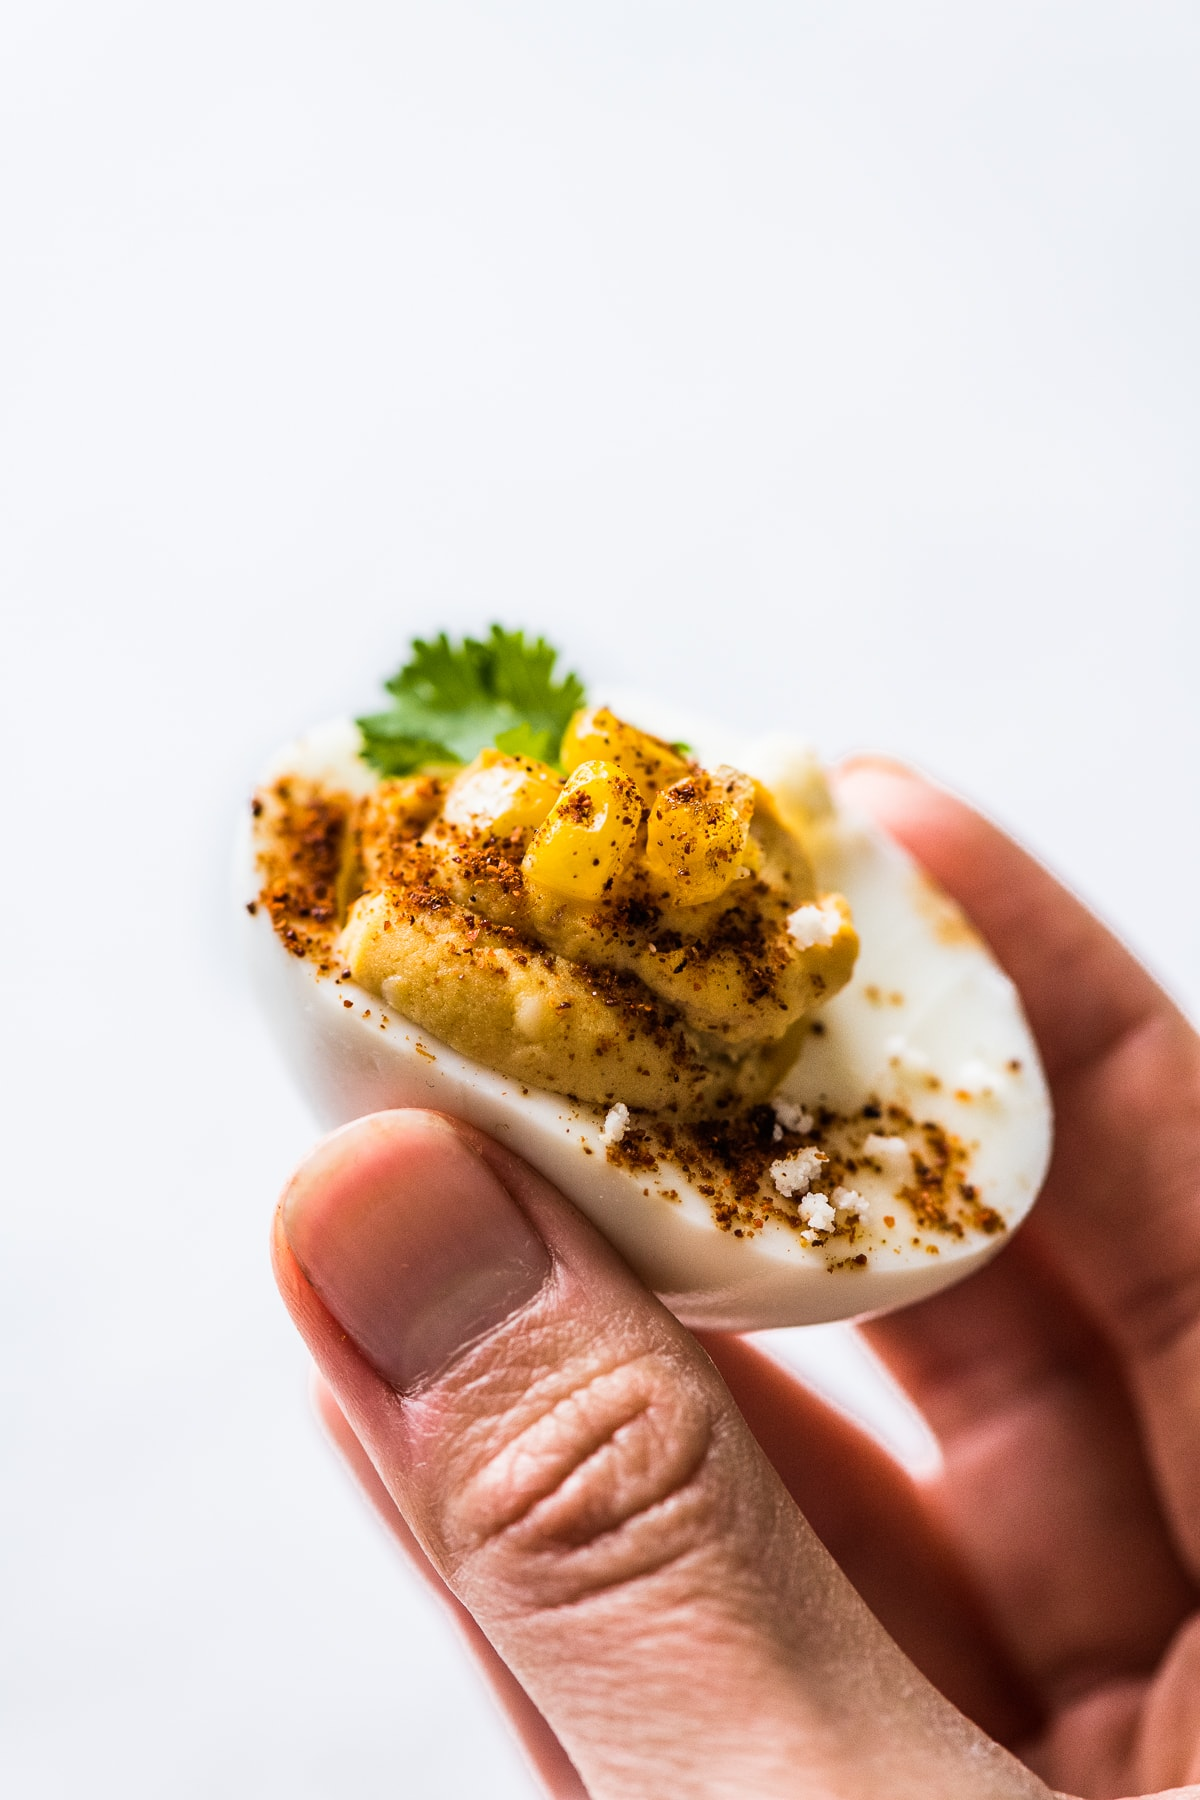 A hand holding a Mexican street corn deviled egg.